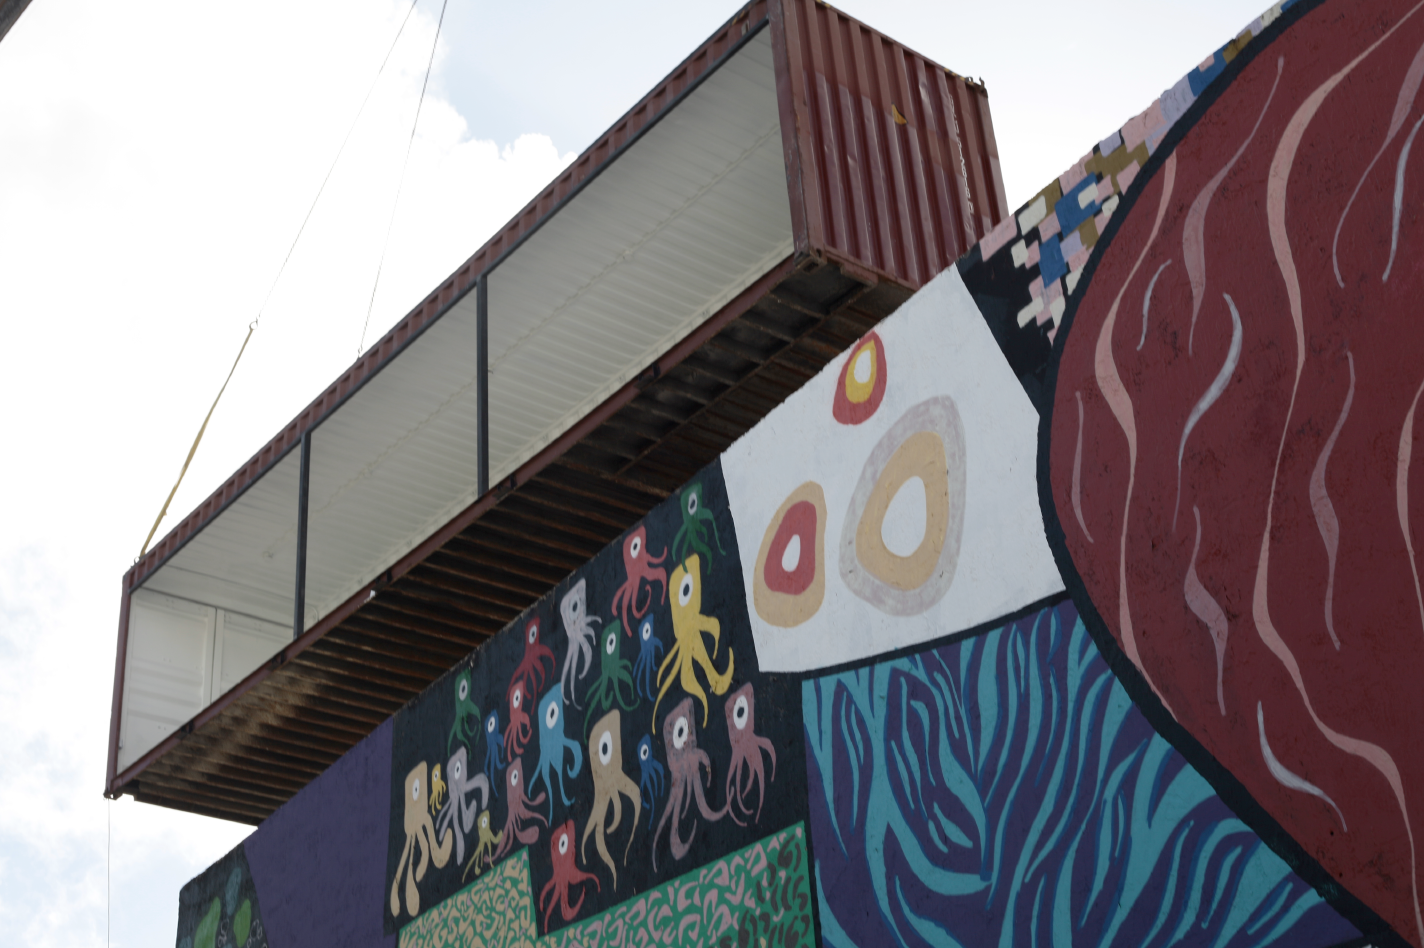 The Market container is welcomed home by The Yard mural.